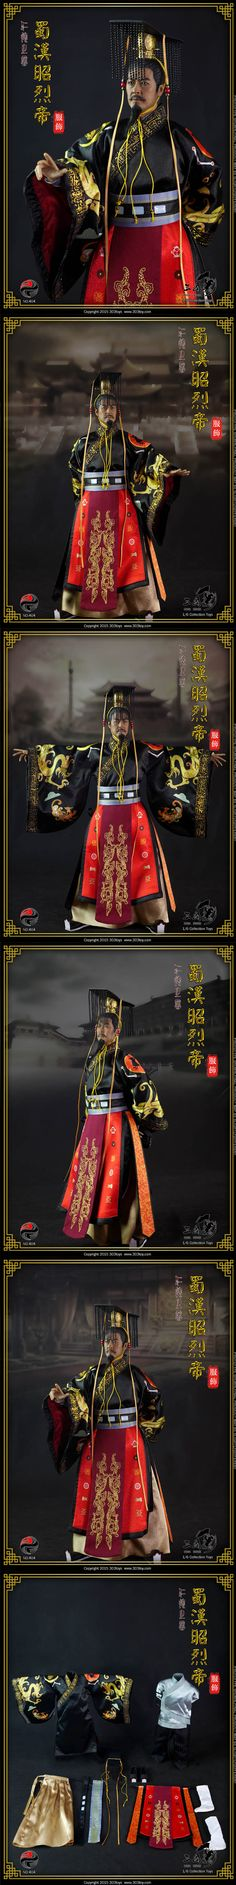 [303TOYS 1/6 NO:404 Han Costume-China emperor of the Han Dynasty dress suit]